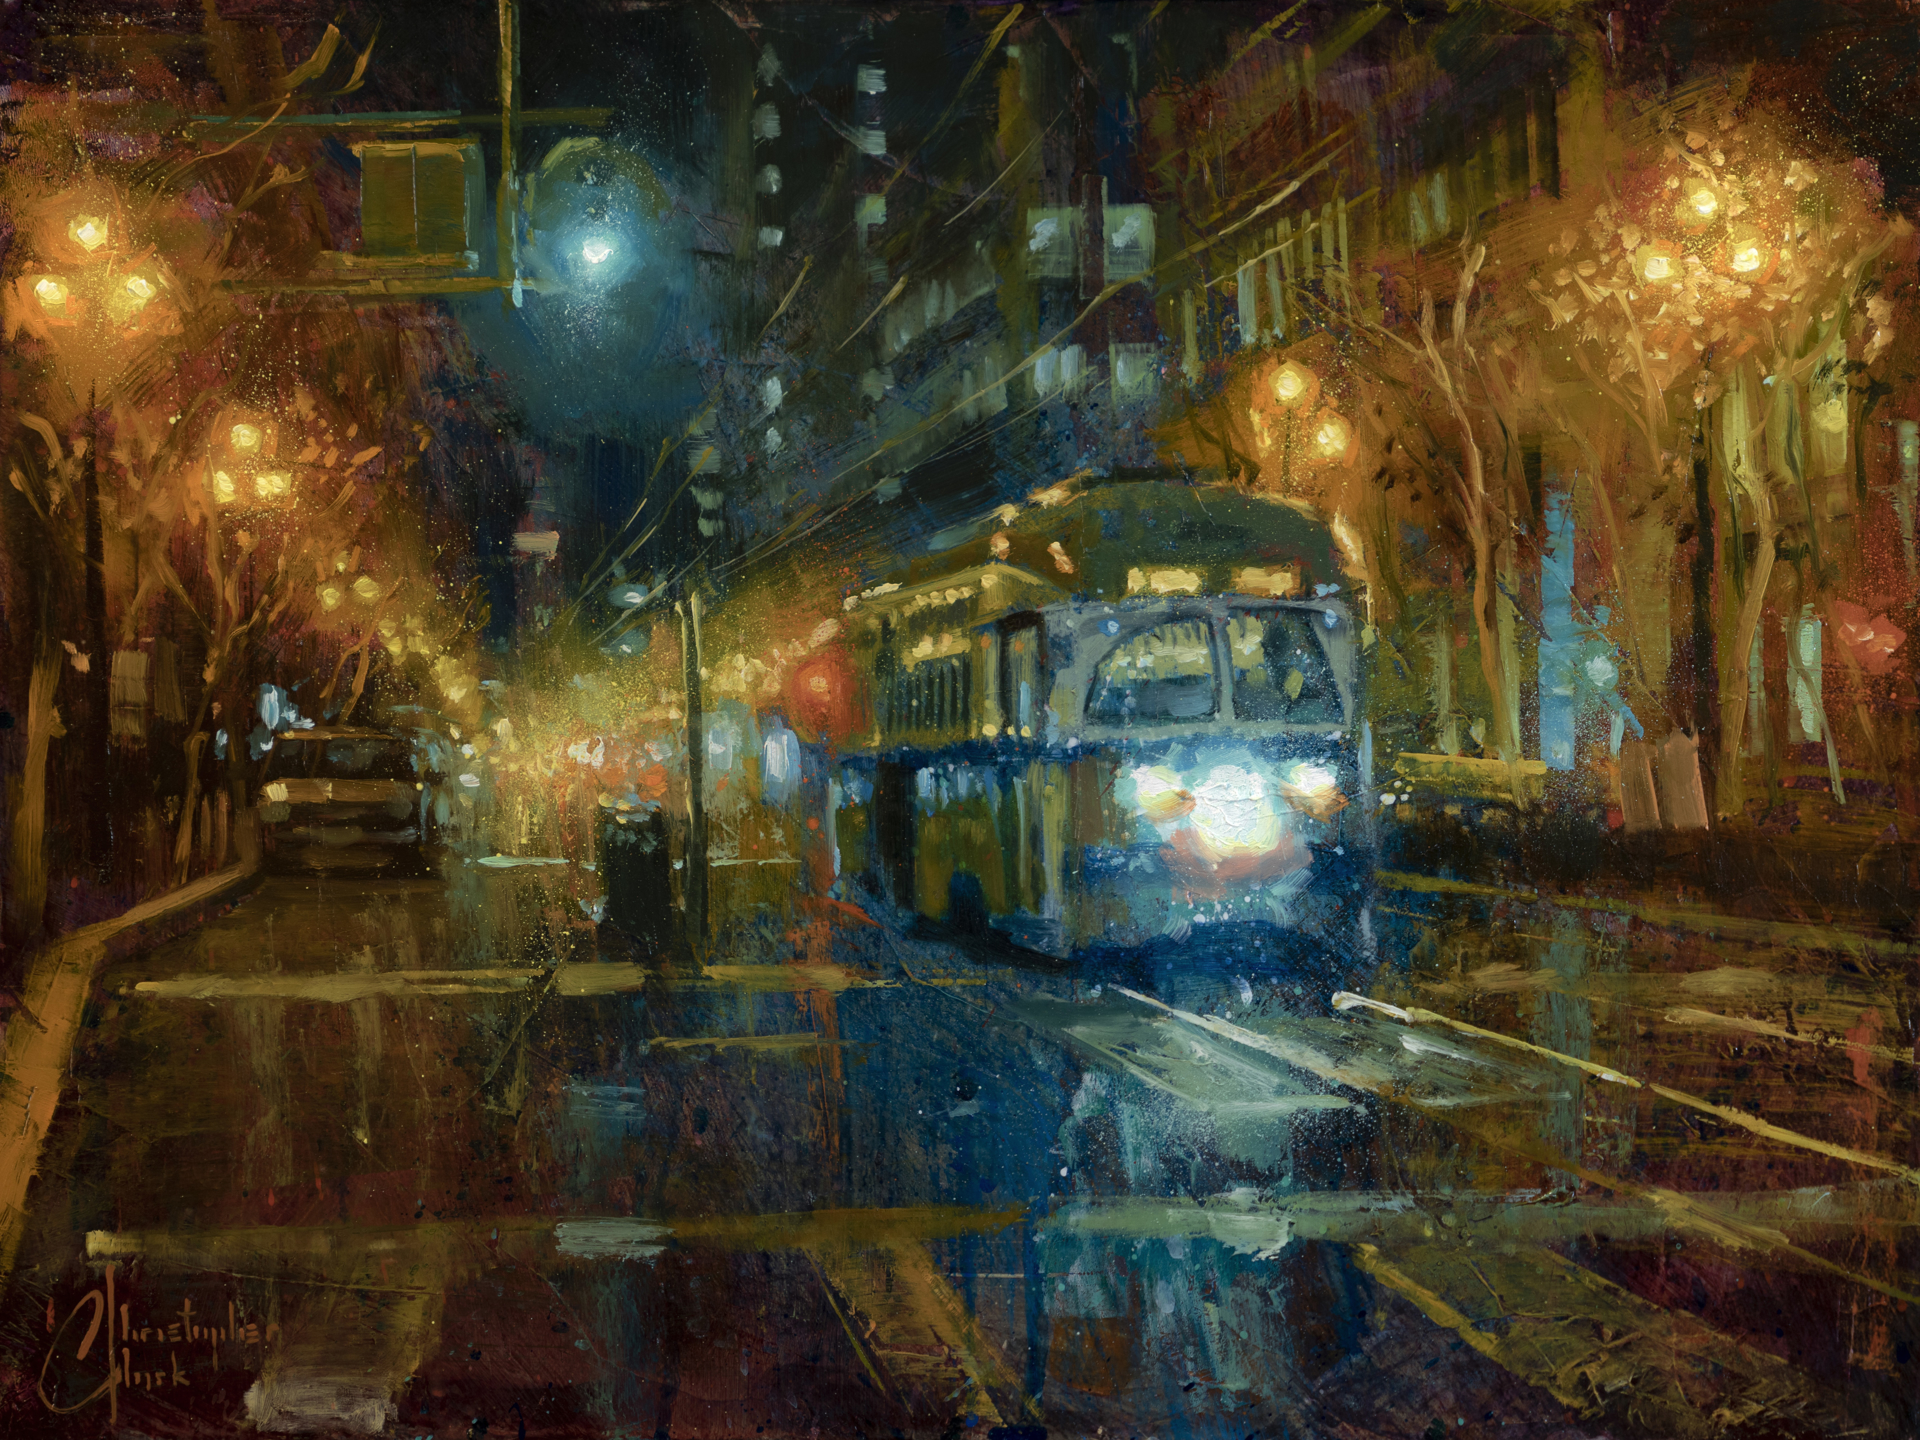 San Francisco Trolley at Night by Christopher Clark